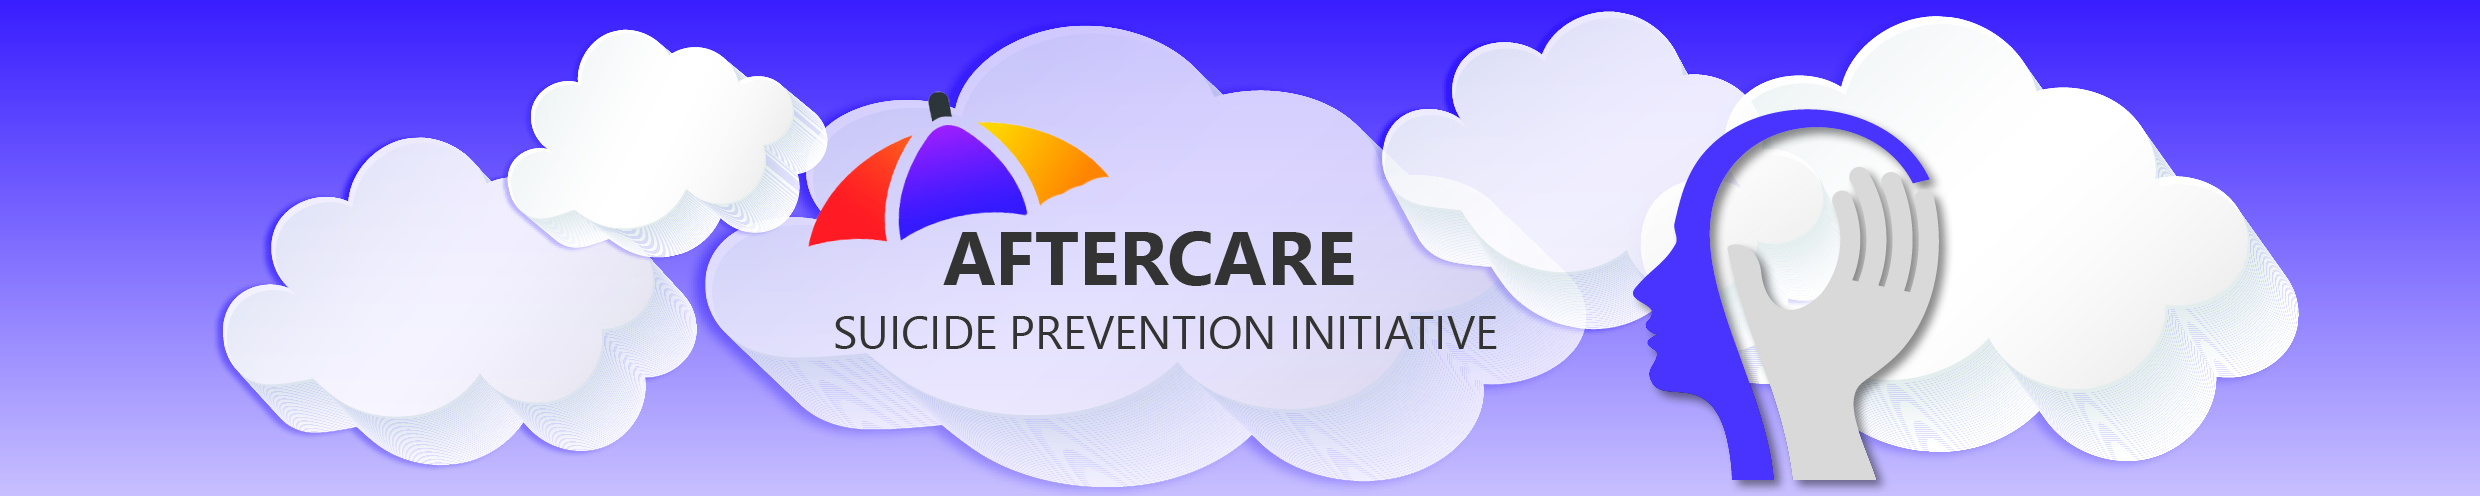 Aftercare logo